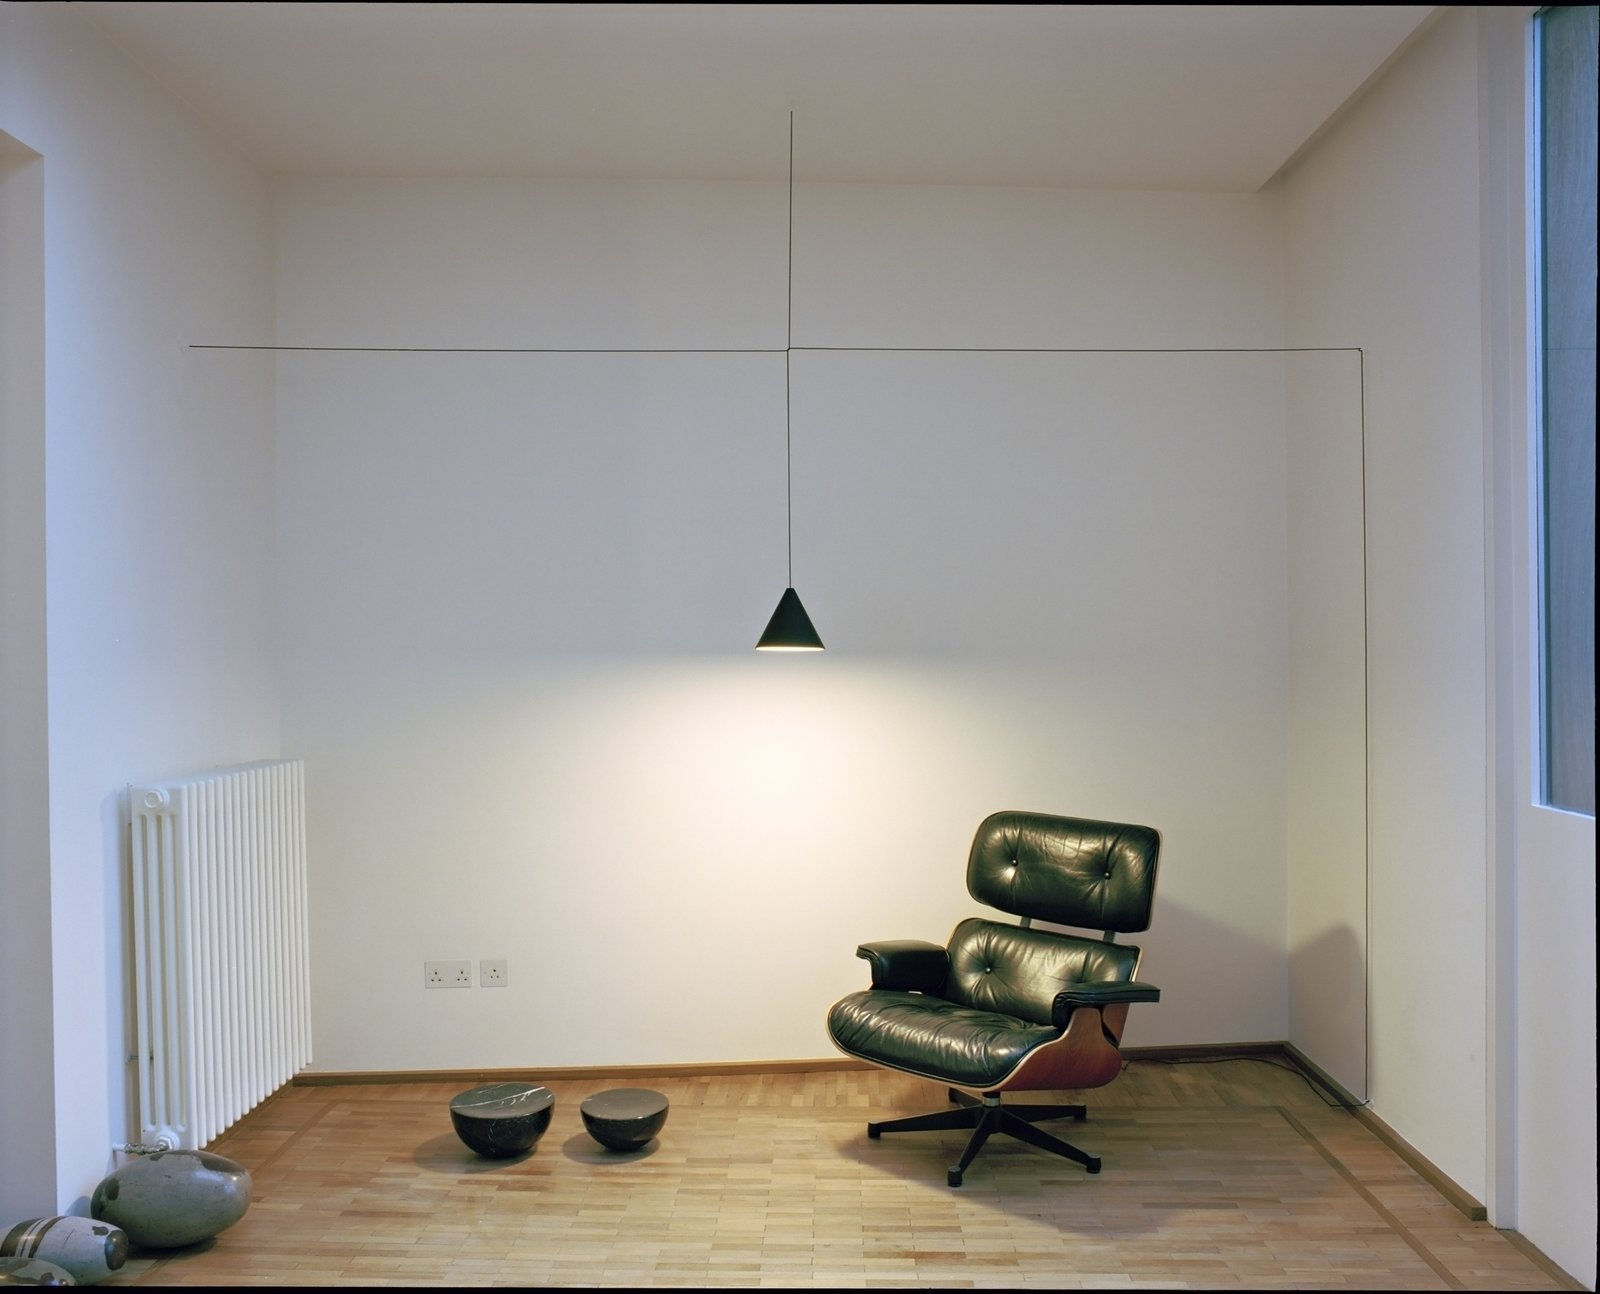 Scheduled for release in May 2014, Flos' String Lights can be combined and customized. They are held together with thin black electrical cords that are drawn into taught, geometric shapes. Photo by Ben Murphy.  Photo 5 of 6 in Jan Vingerhoets of Flos on the Future of Lighting Design